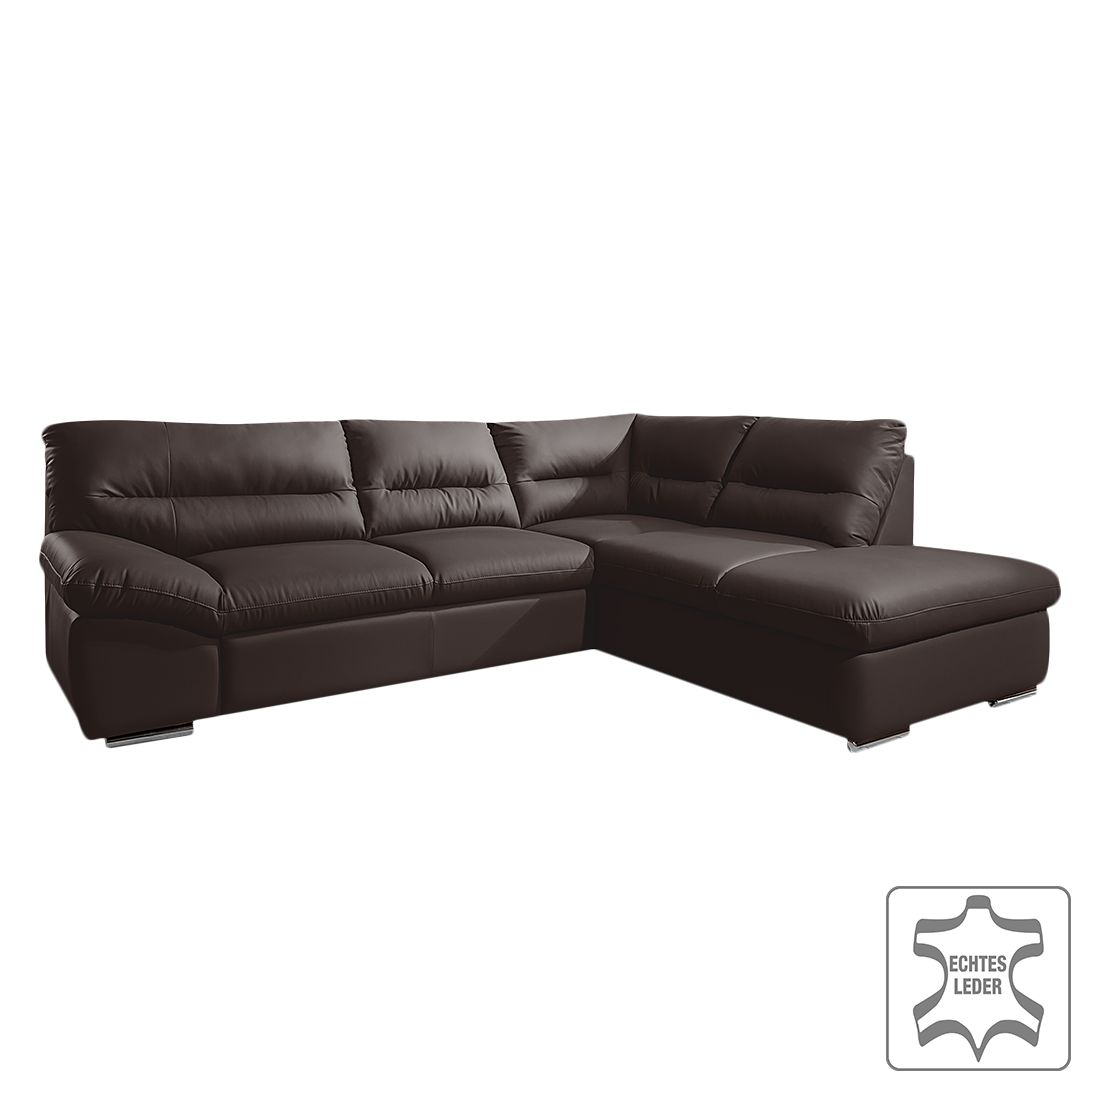 ecksofa torino mit schlaffunktion echtleder schwarz ottomane davorstehend rechts. Black Bedroom Furniture Sets. Home Design Ideas